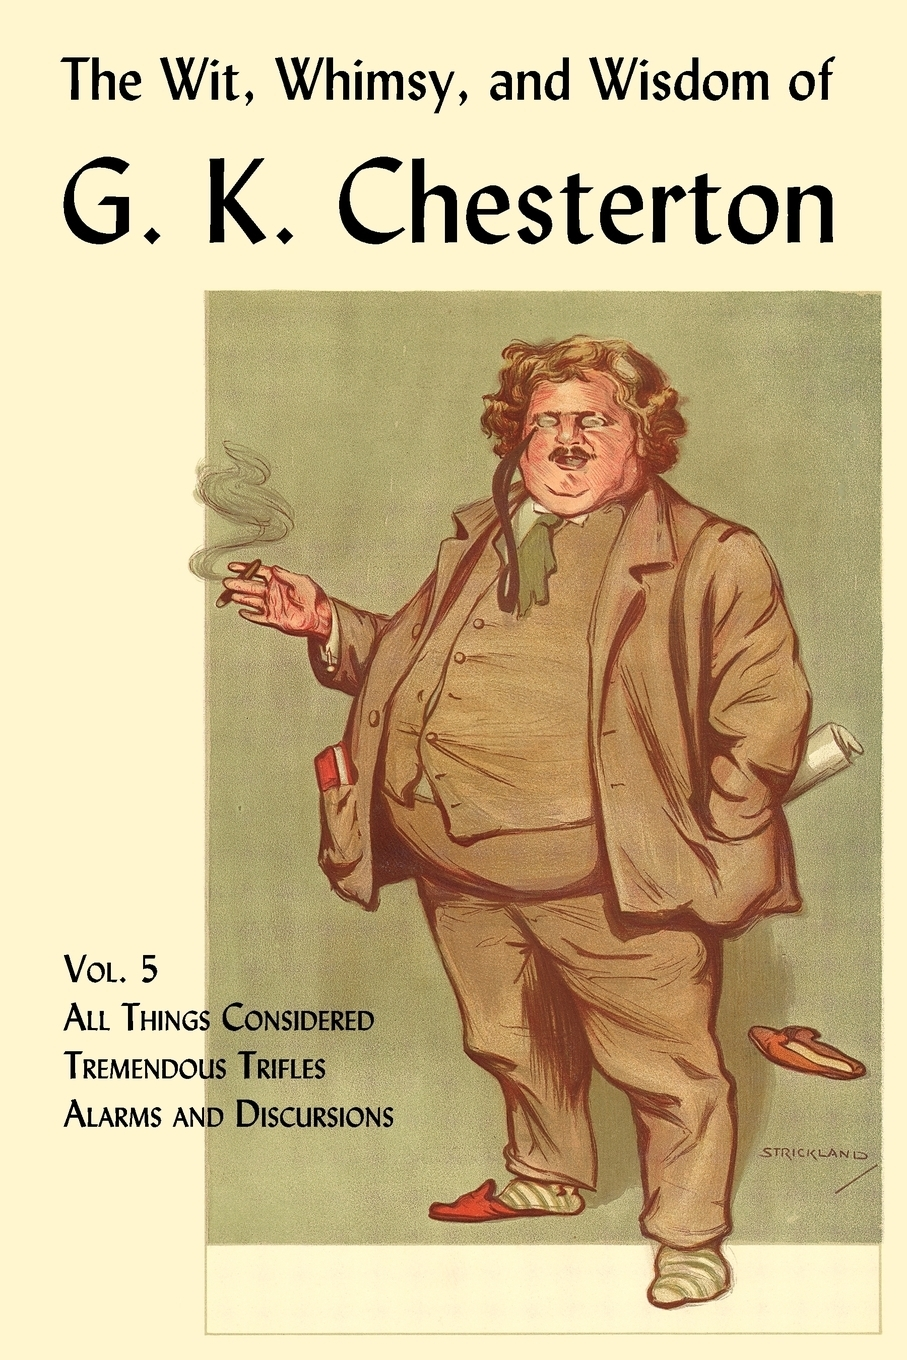 G. K. Chesterton. The Wit, Whimsy, and Wisdom of G. K. Chesterton, Volume 5. All Things Considered, Tremendous Trifles, Alarms and Discursions